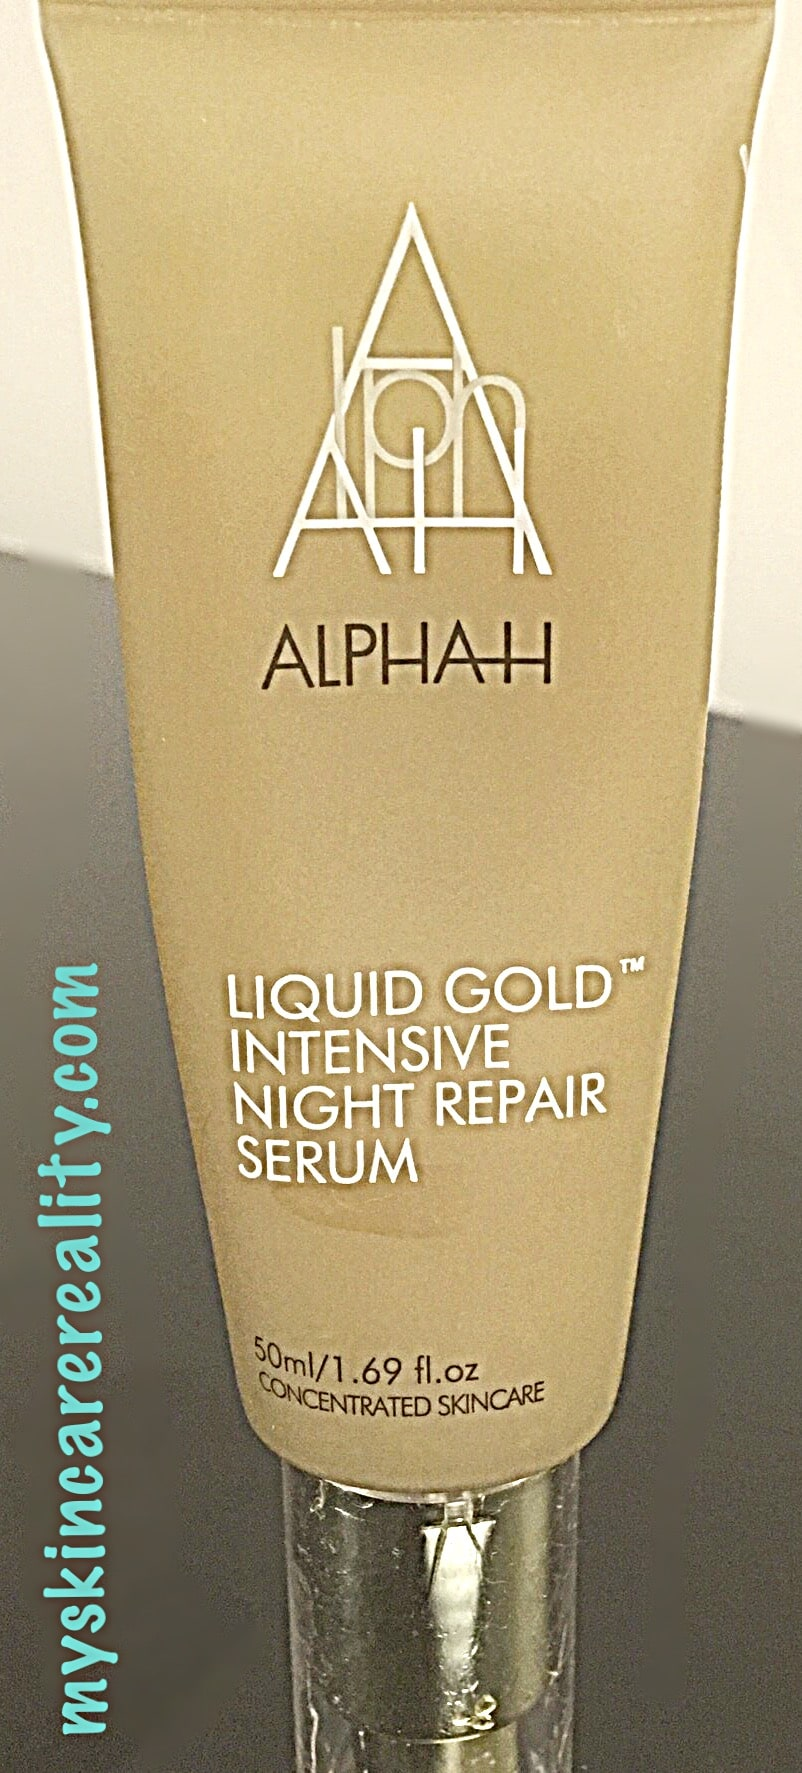 Alpha H Liquid Gold Intensive Overnight Serum | Review